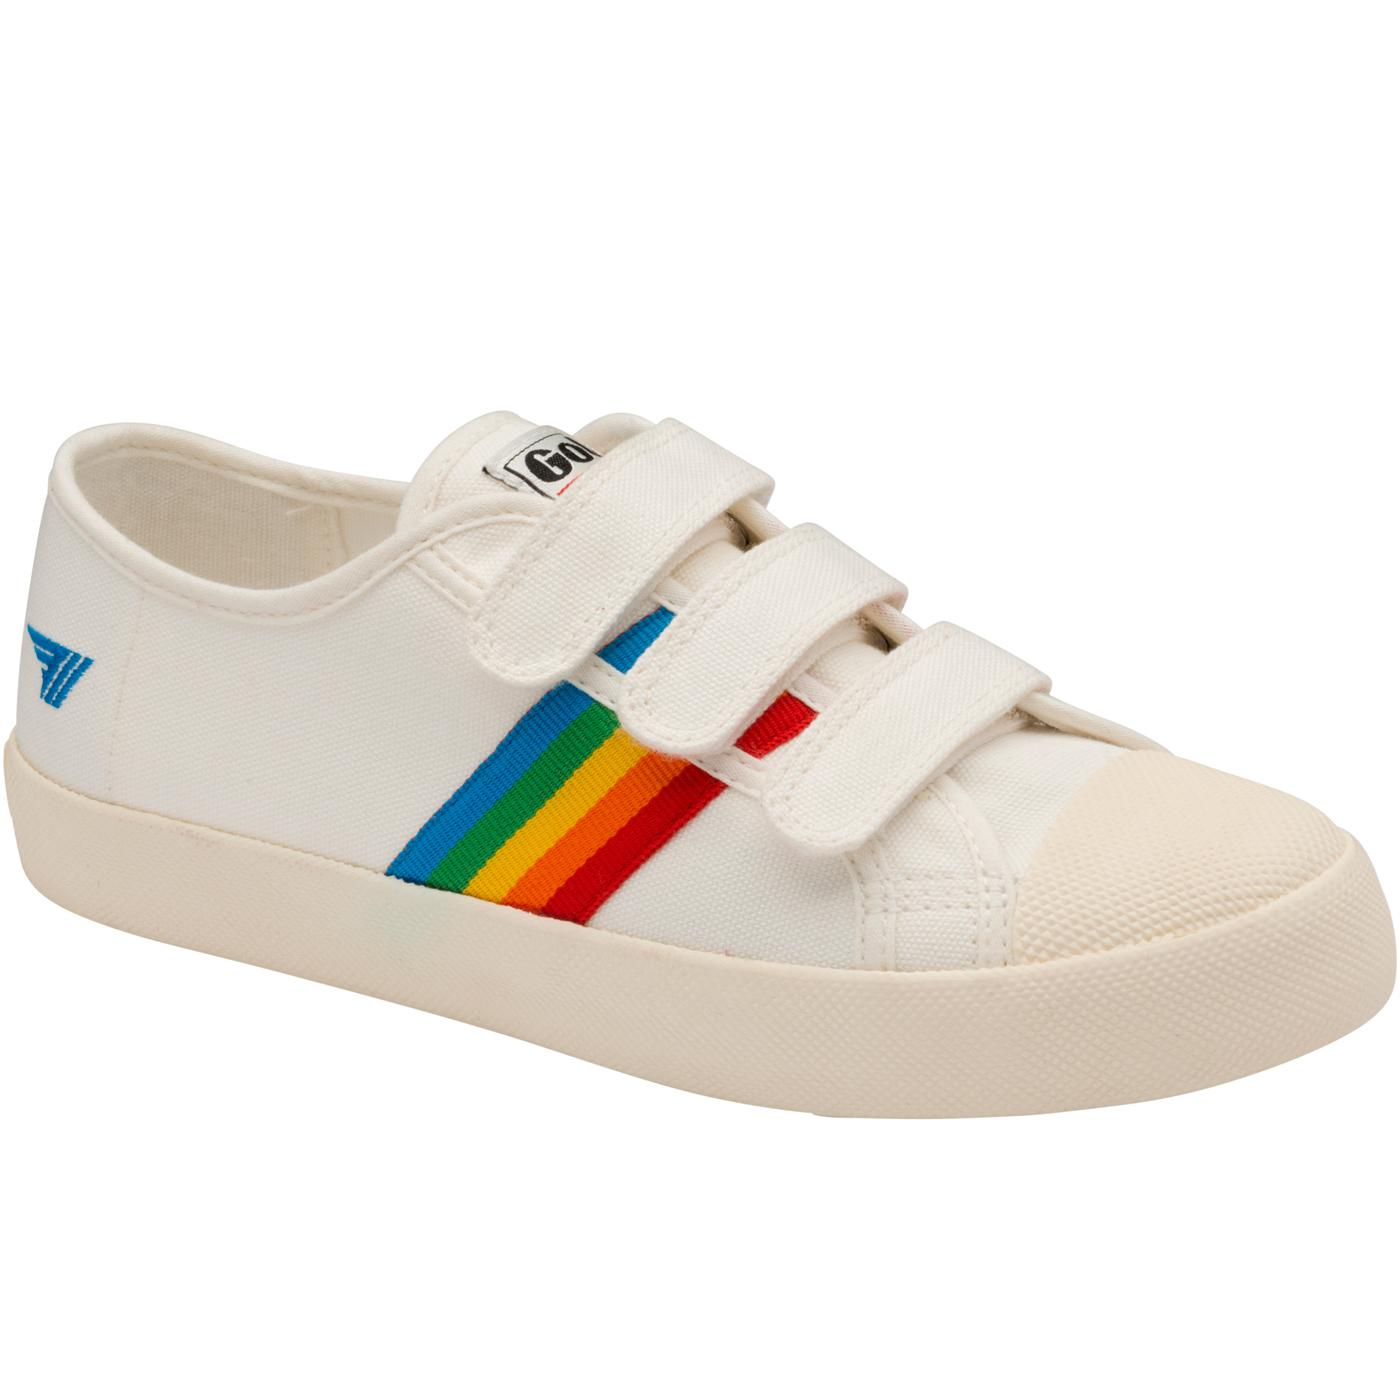 GOLA Coaster Rainbow Velcro Trainers (White/Multi)